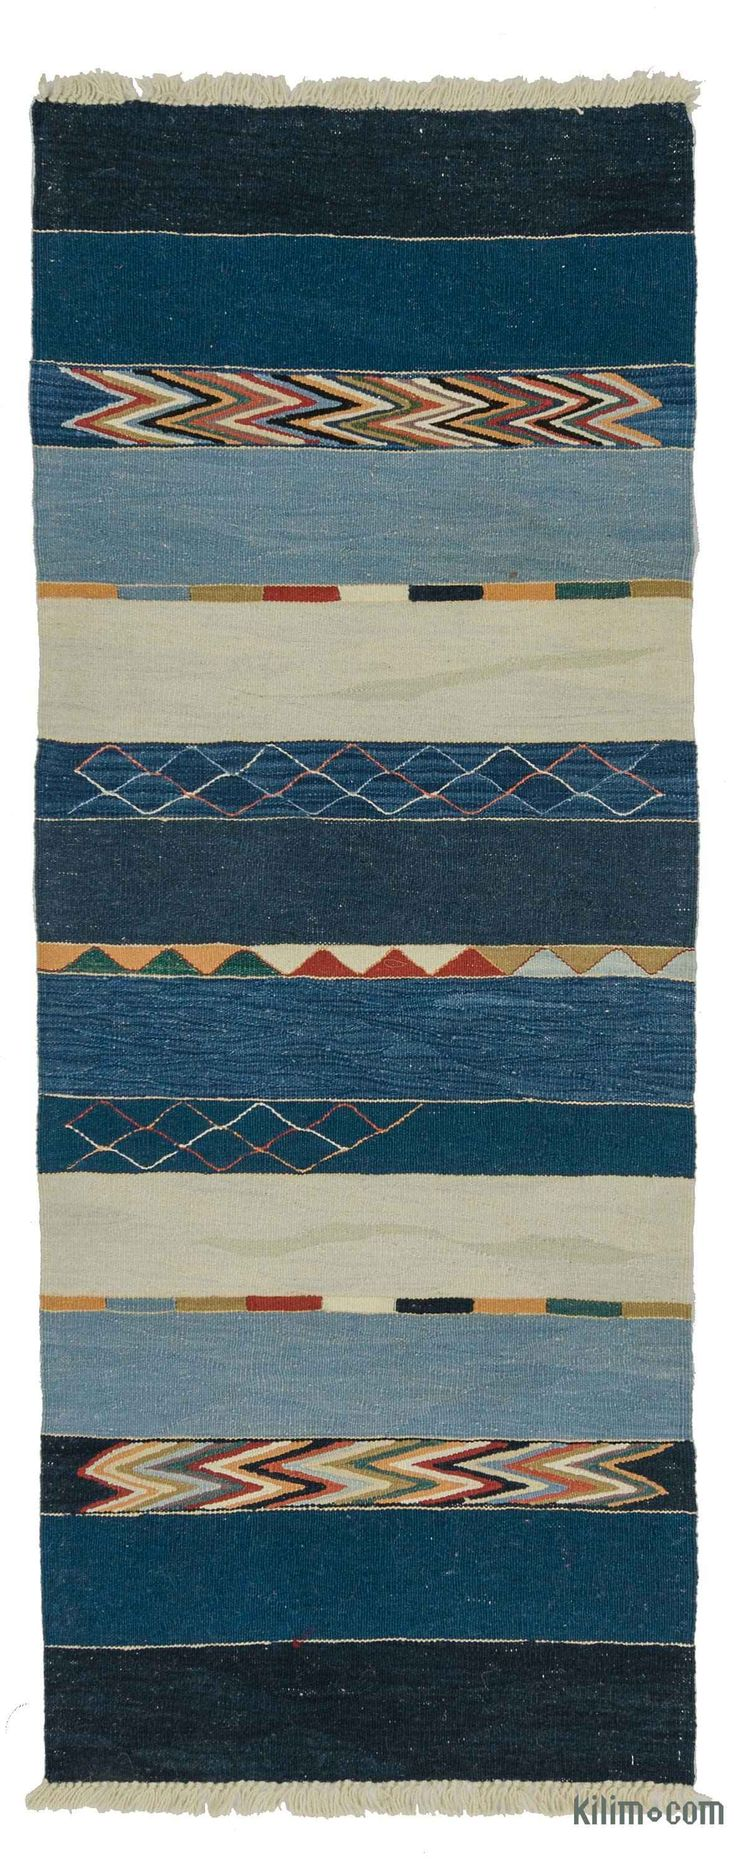 Beautifully transform your living space with our handmade, authentic and timeless new kilim rugs that carry with them many of the traditional elements that made true vintage Turkish Kilim rugs so precious. Each kilim is skillfully hand-woven in Turkey to create a beautiful piece of art. We use vegetable dyed and hand spun wool to make sure they age gracefully.This fine blue rug measures 2'4'' x 6'4'' (28 in. x 76 in.). We can customize it by adding your monogram or removing the fringes upon…